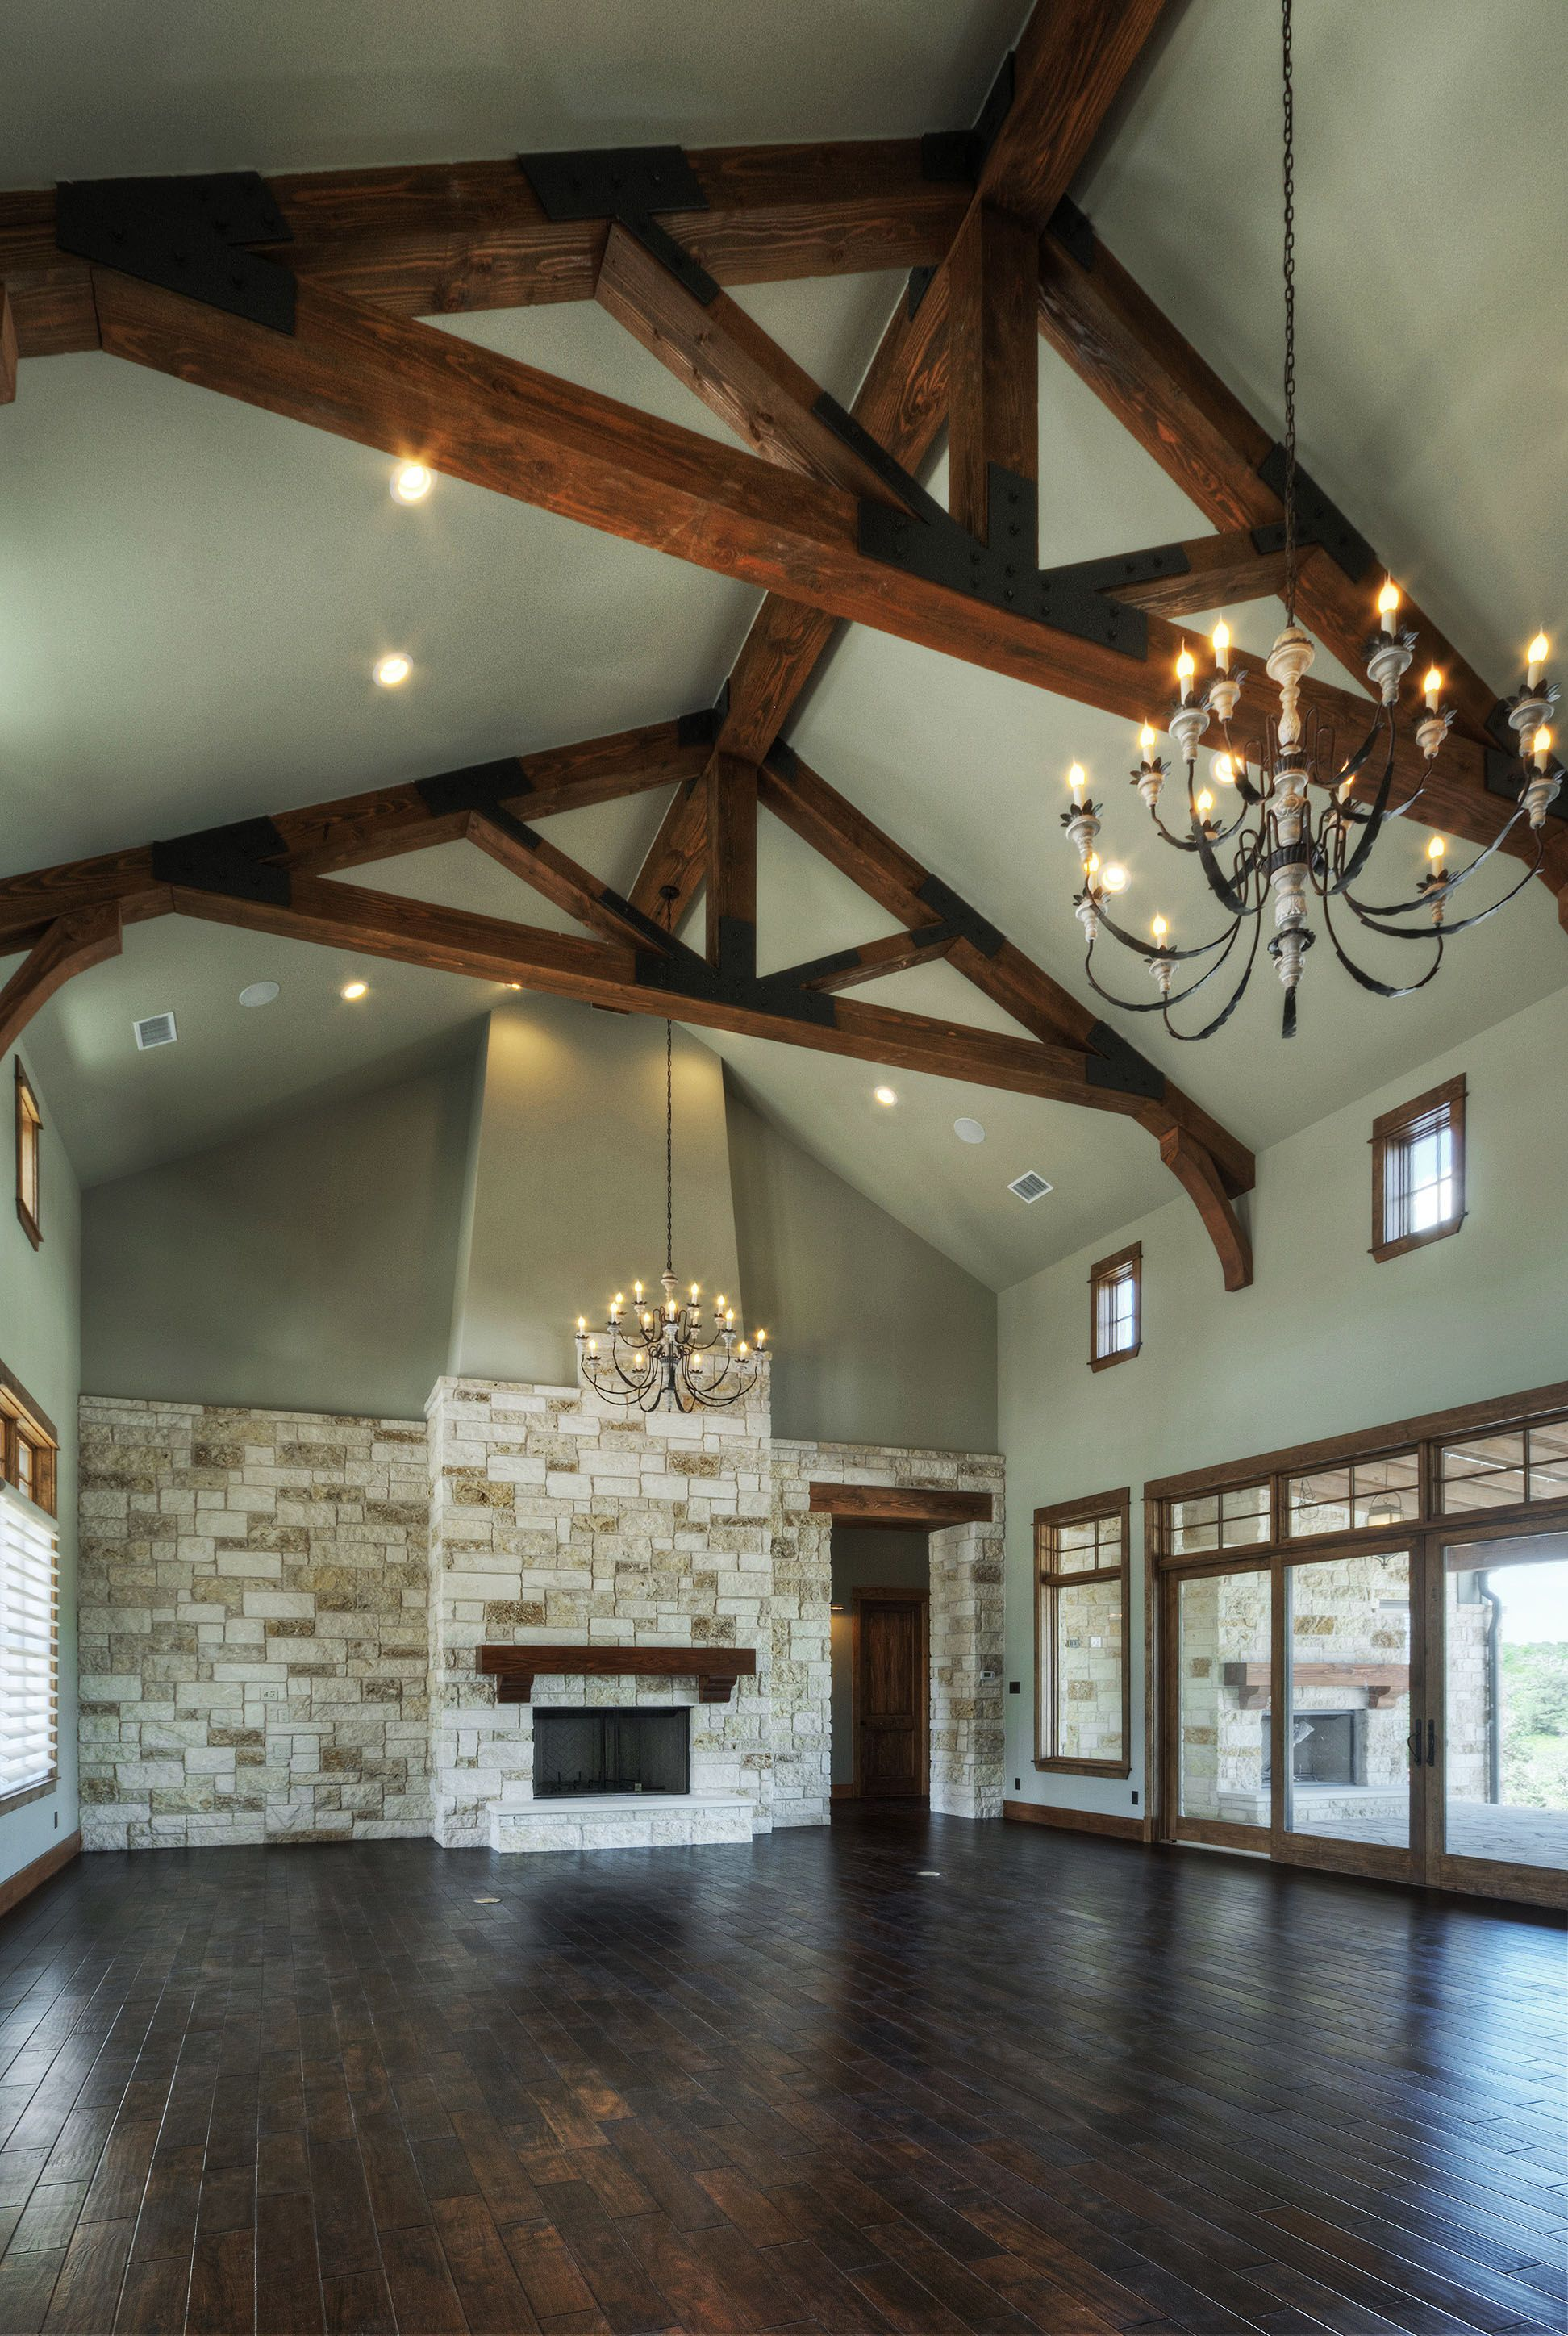 dining room - family room - living room in one. limestone